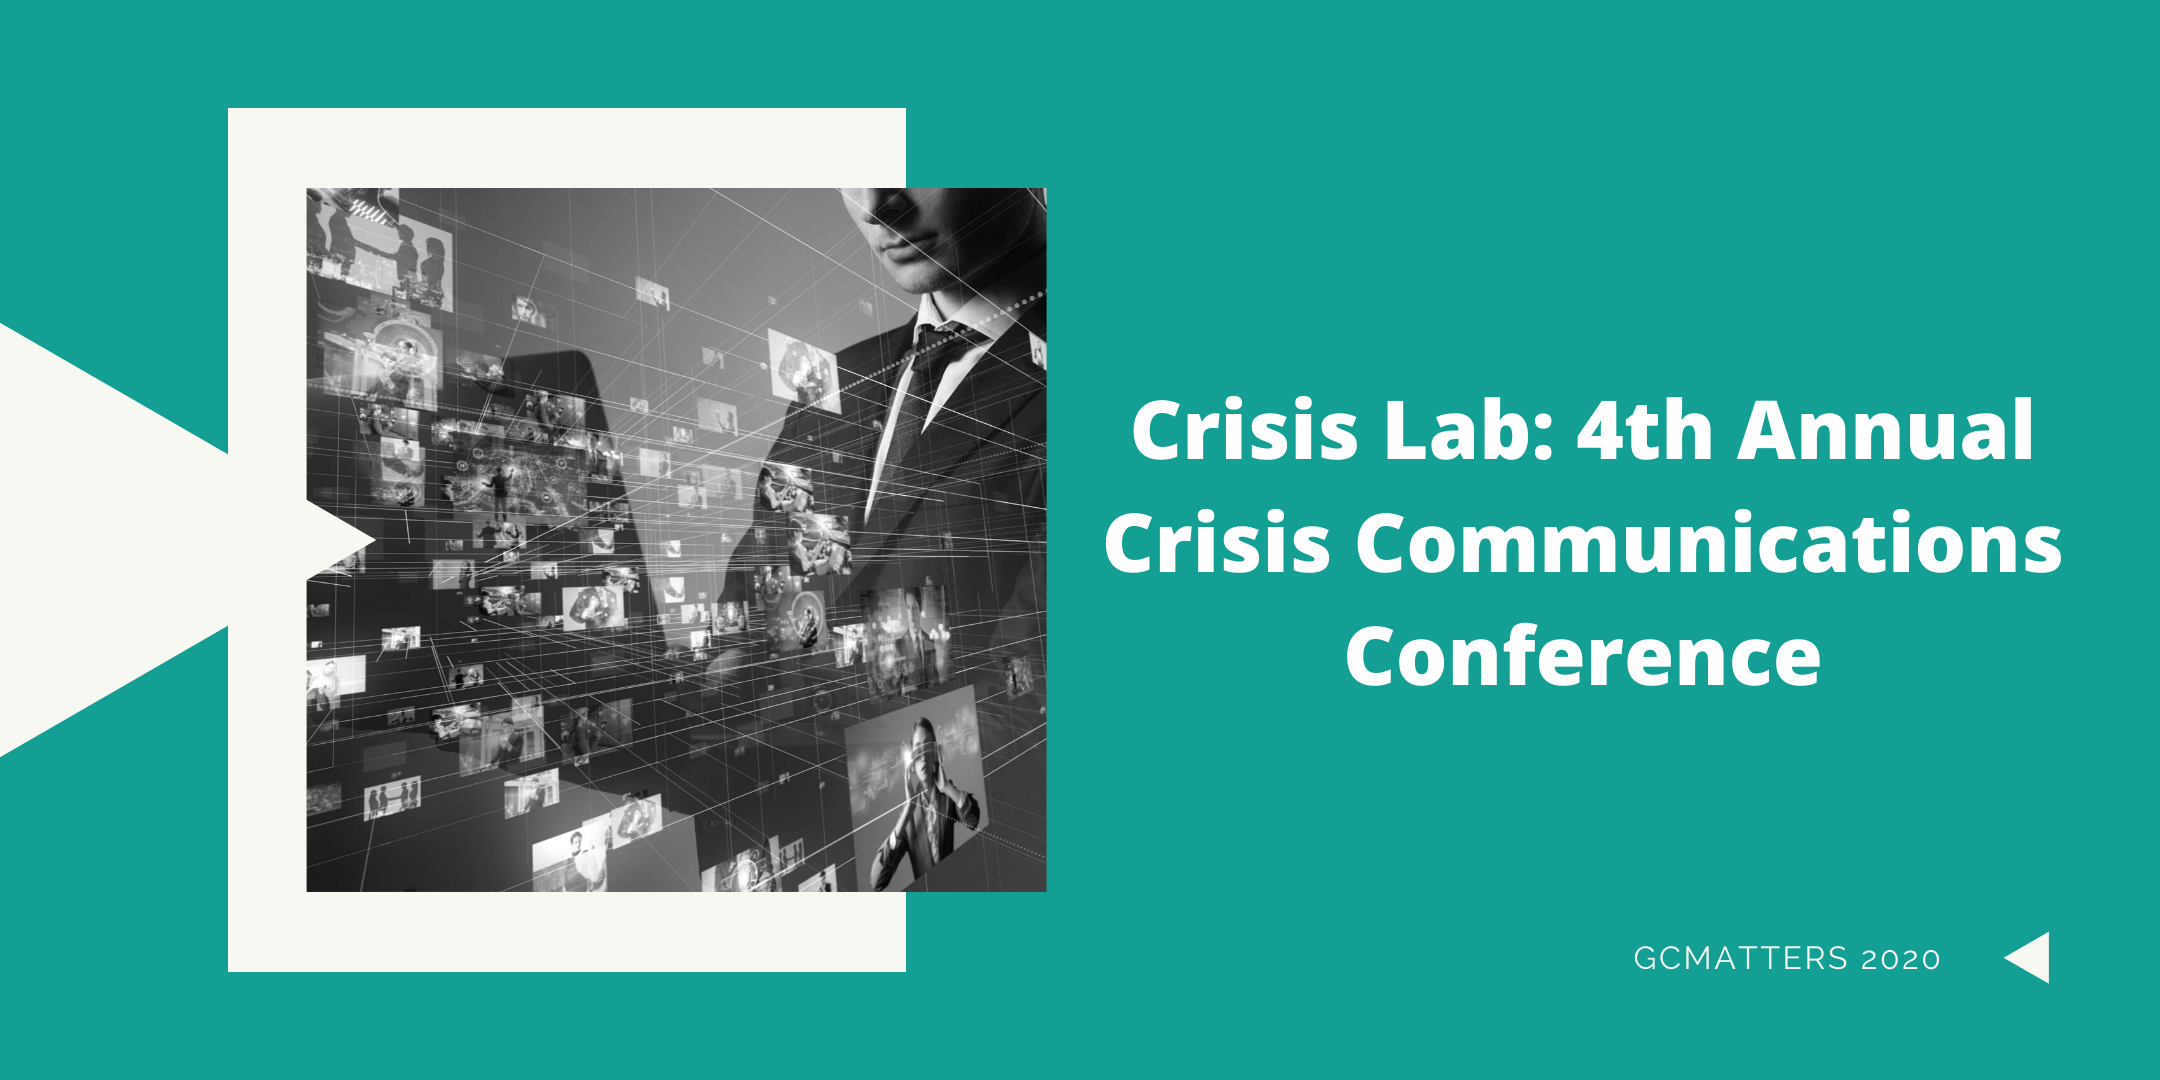 Crisis Lab: 4th Annual Crisis Communications Conference